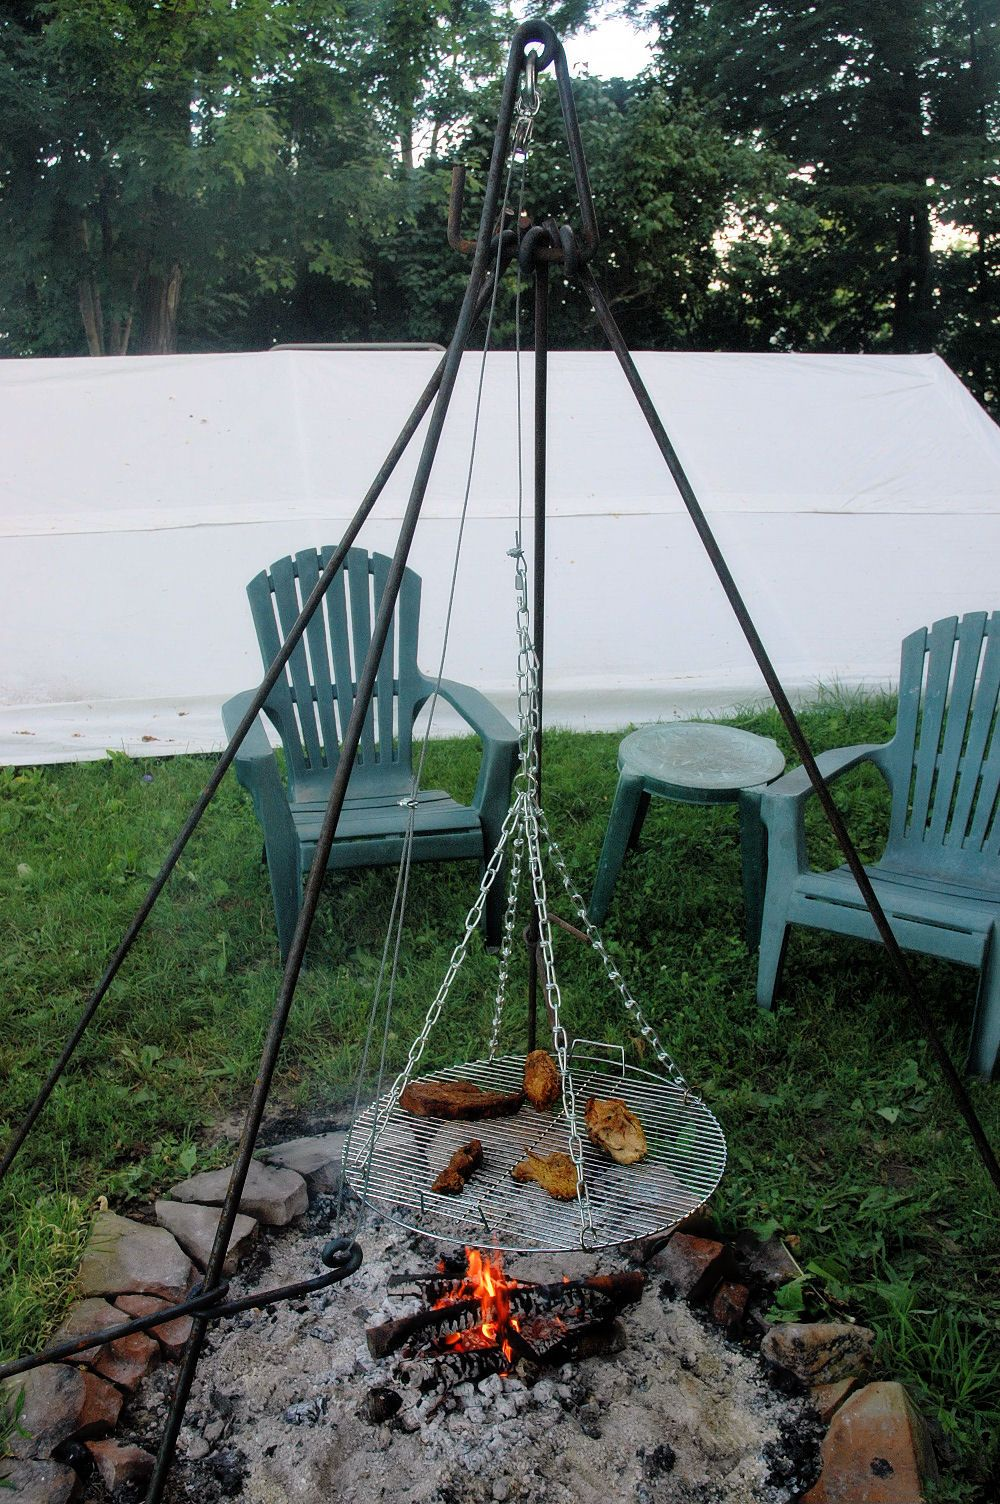 Fire pit cooking | Gardening ideas | Fire pit cooking ...